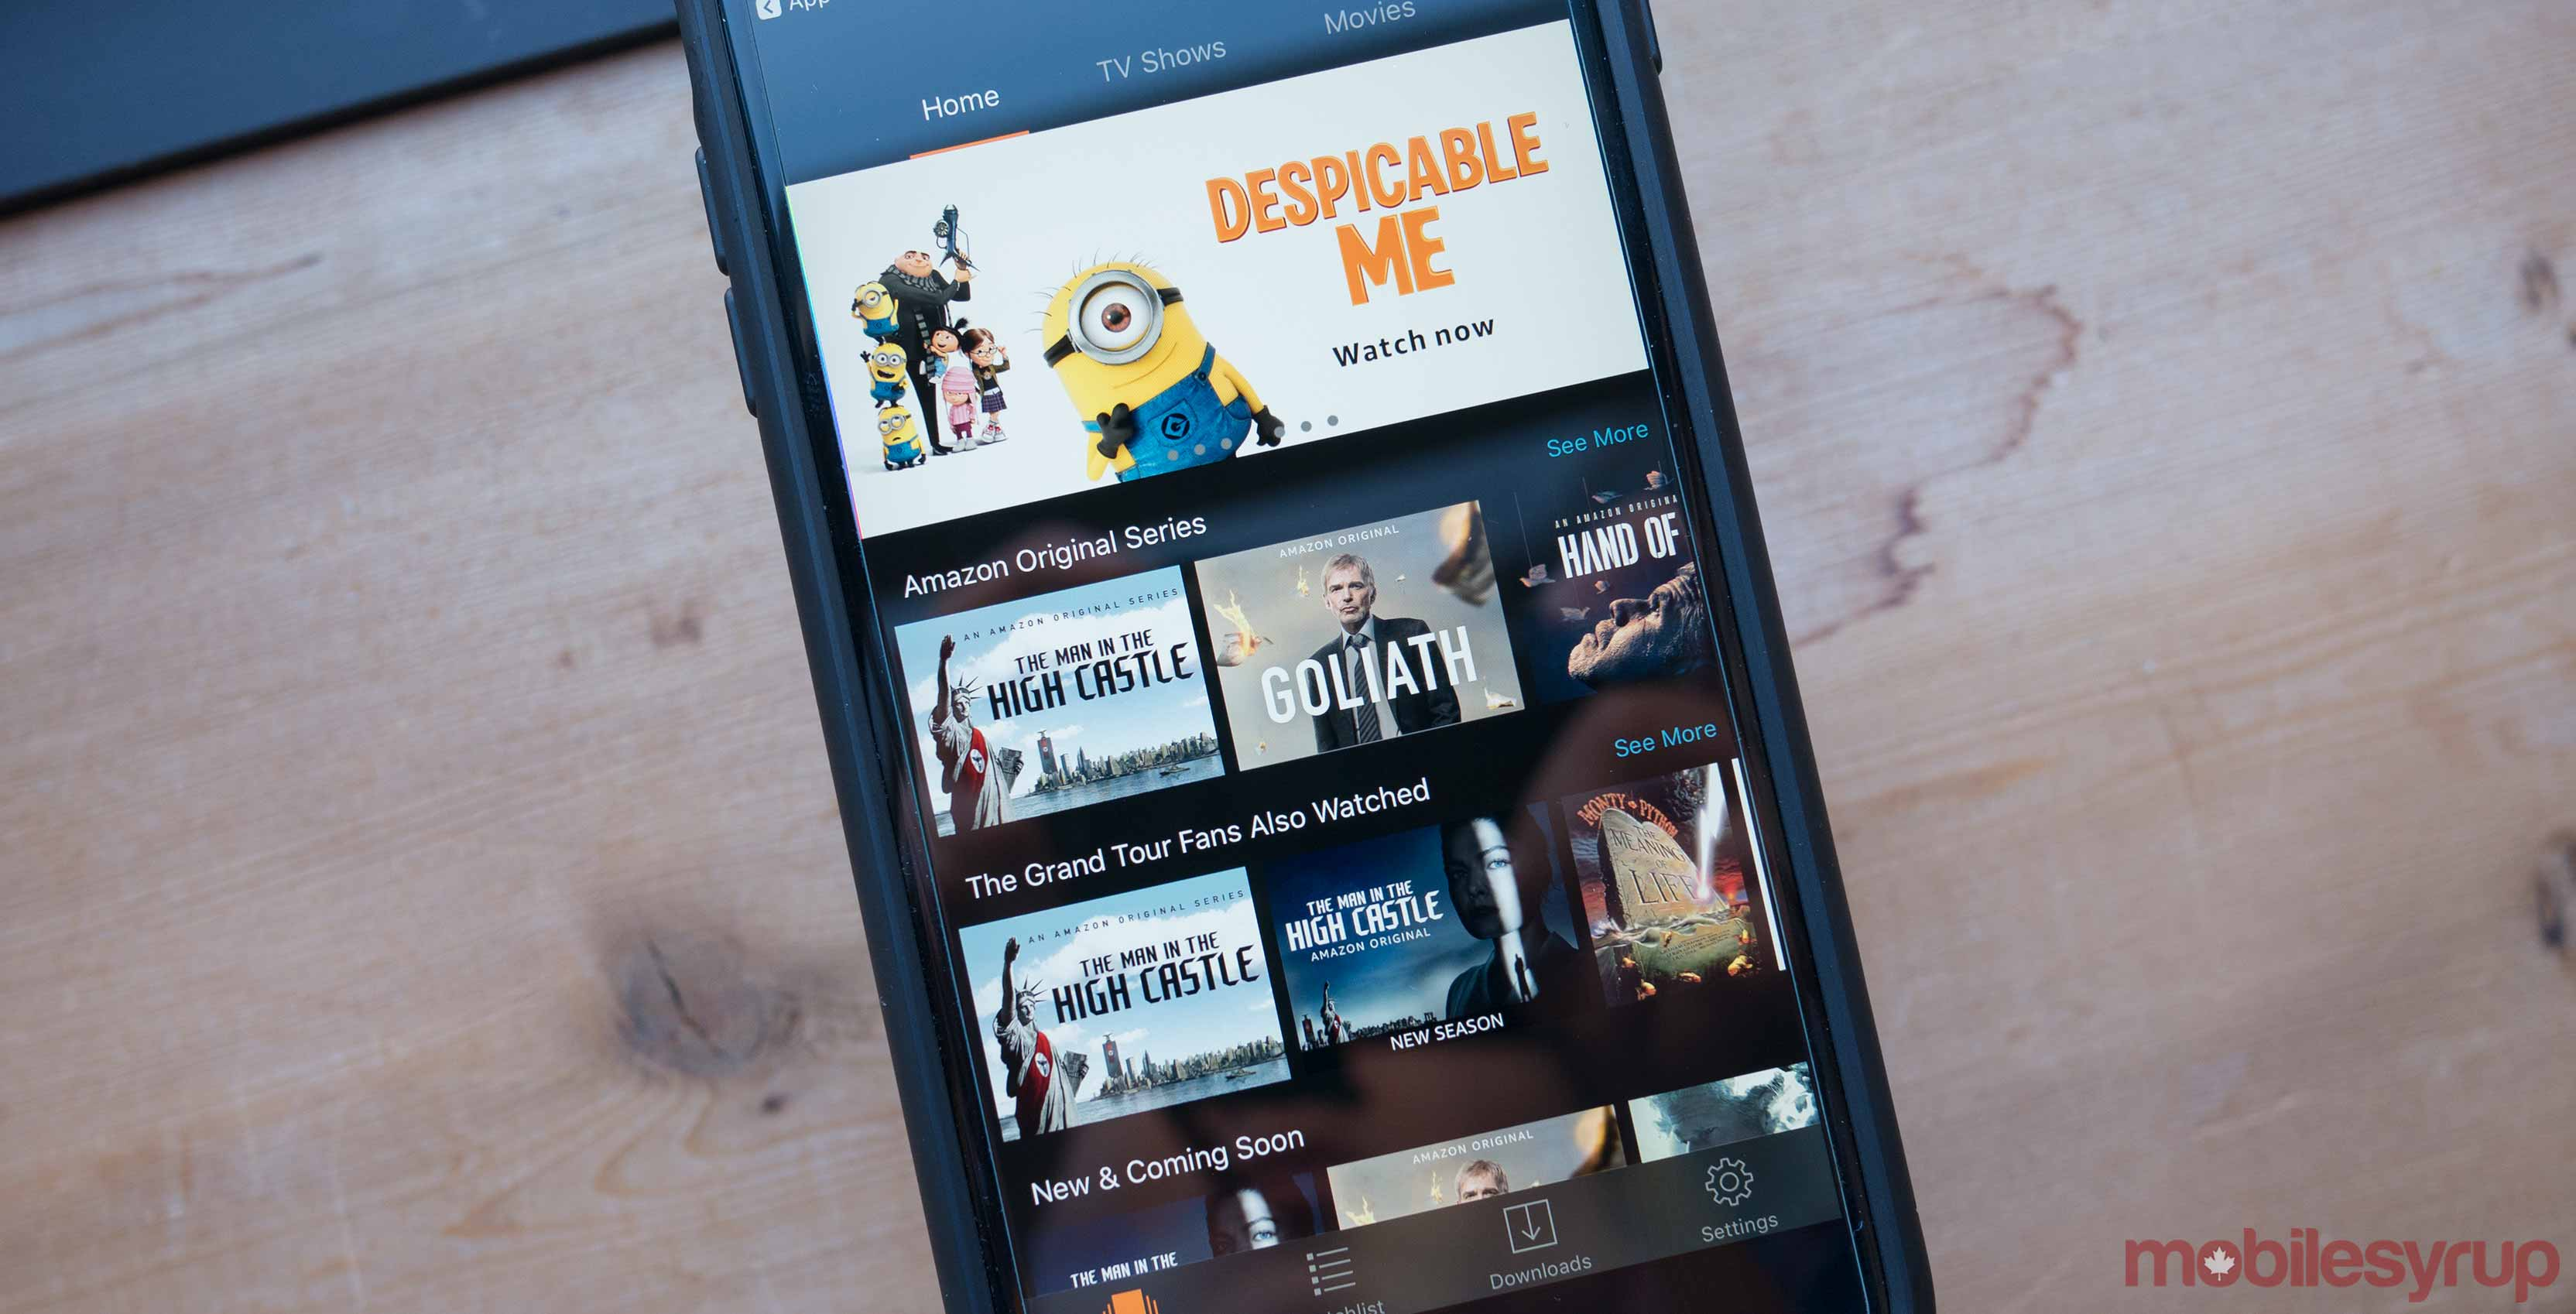 Amazon Prime video on smartphone